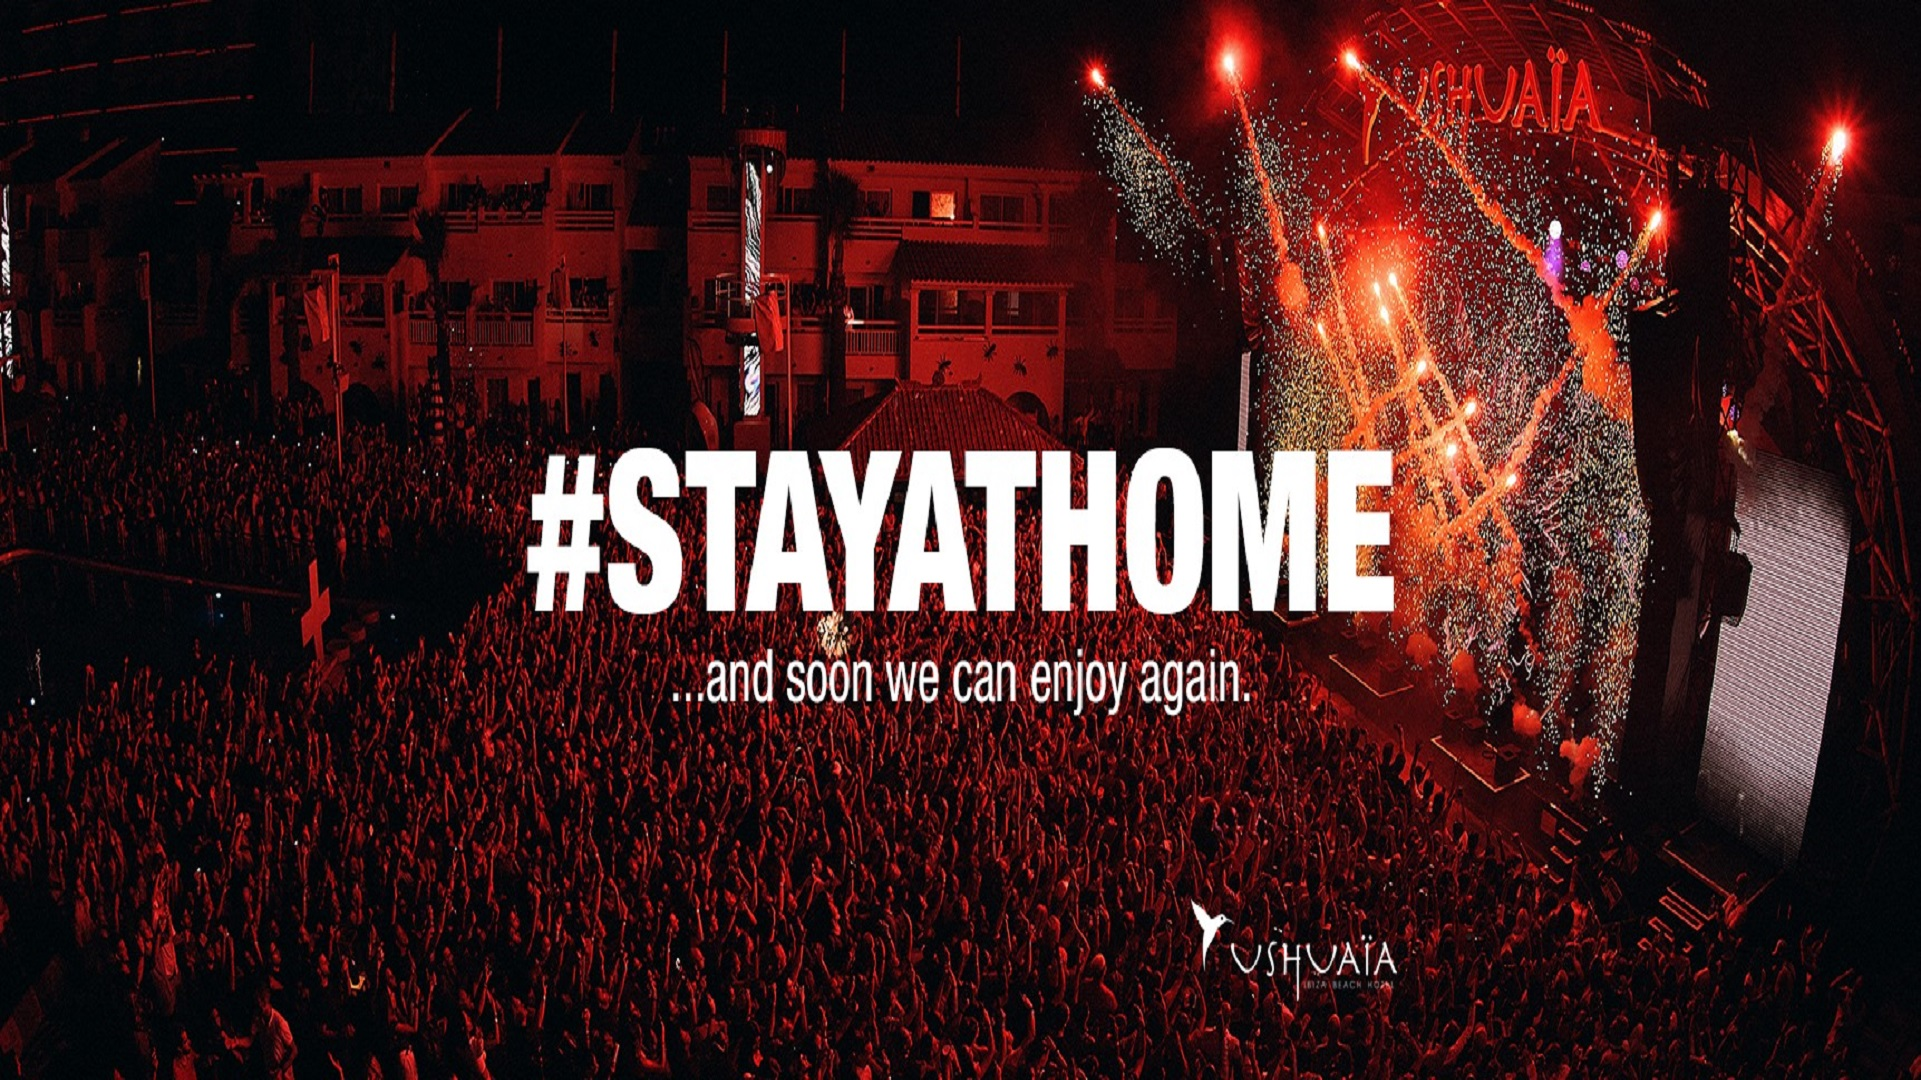 ushuaia stay at home 1